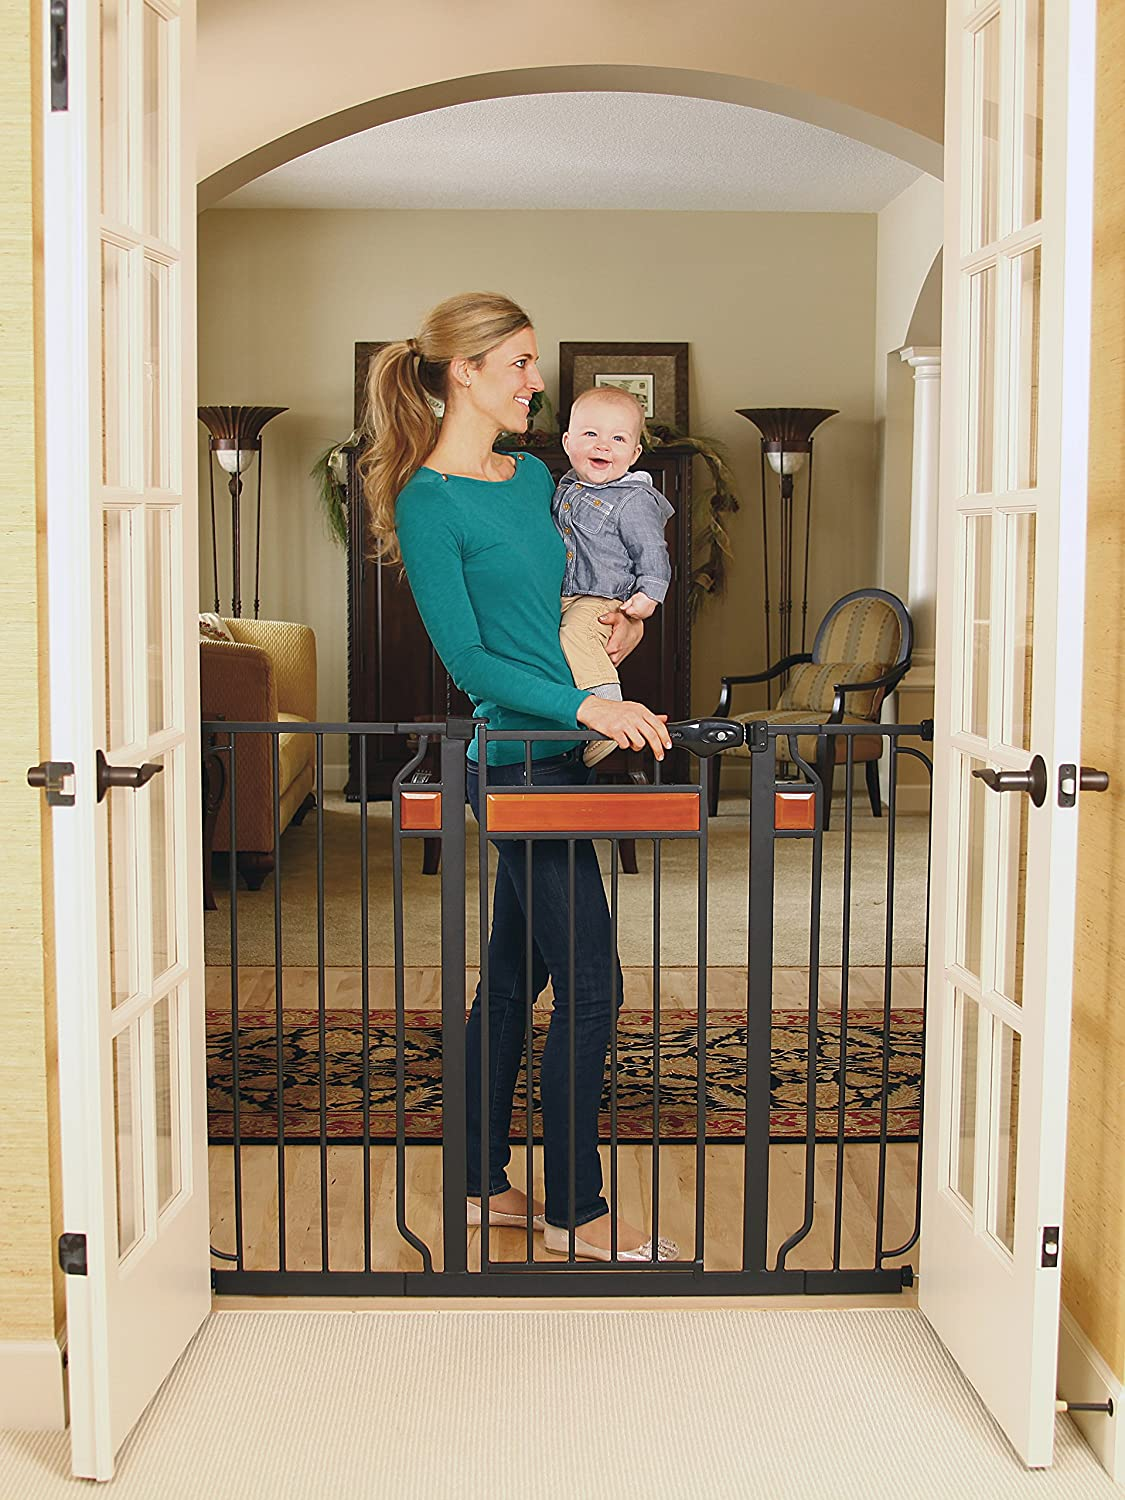 Amazon.com: Regalo Home Accents Extra Tall Walk Thru Gate ...